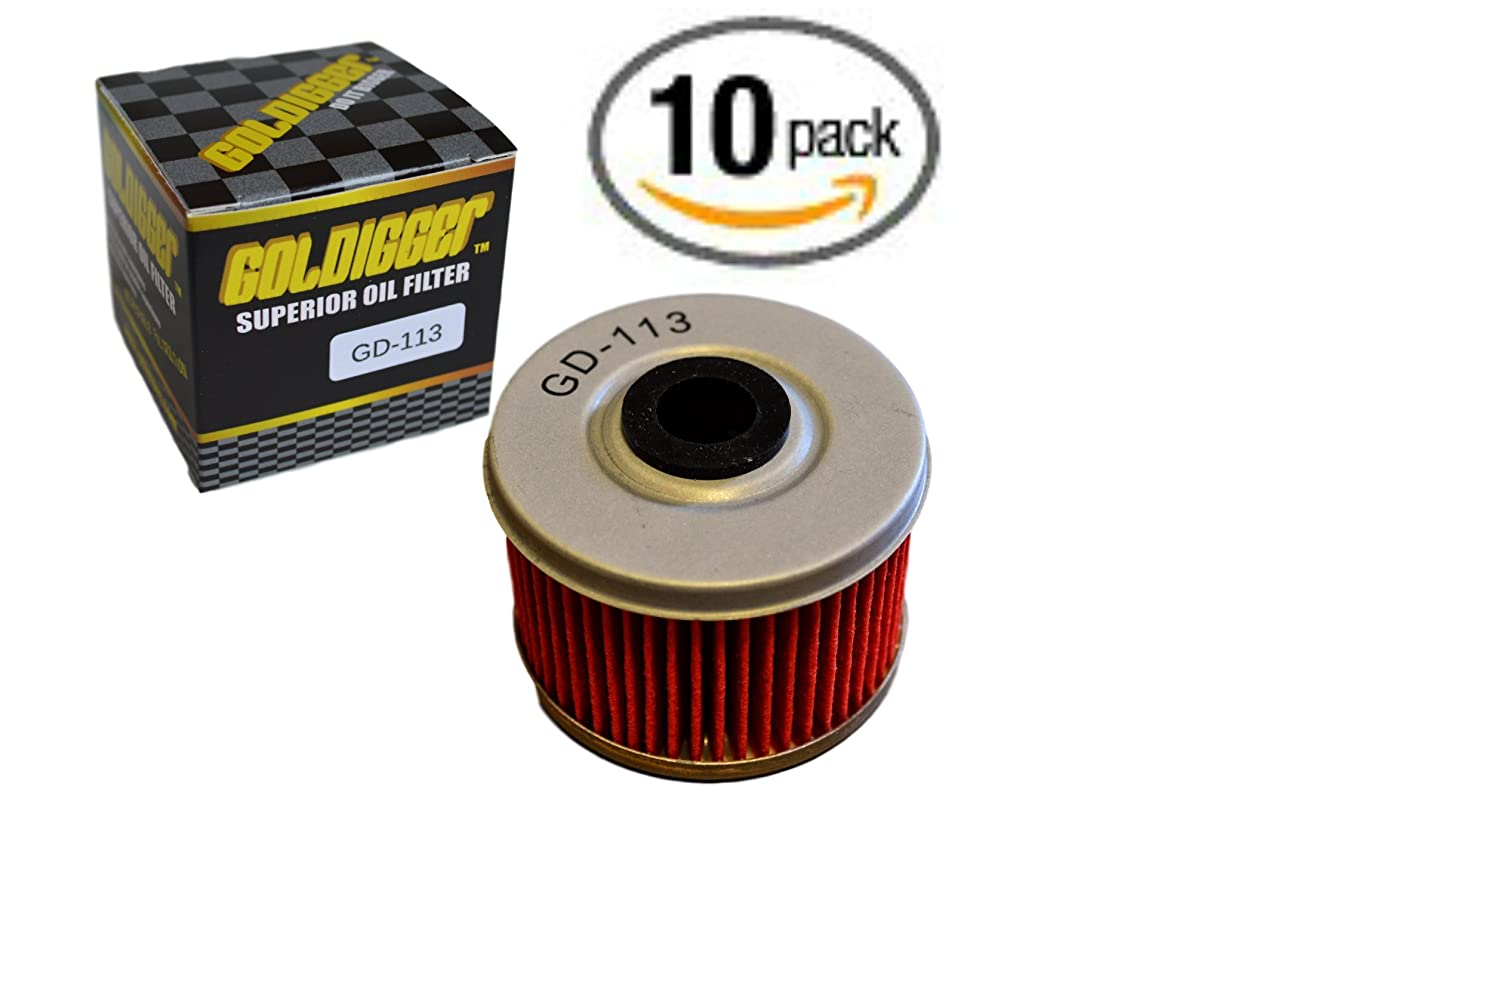 GOLDIGGER After Market HF113 & KN-113 Replacement Oil Filter Motorcycle/Dirt Bike/ATV Fit Honda TRX350 TRX400 FOREMAN RUBICON FOREMAN EX CB400 ATC250ES TRX500 (3 Pack)